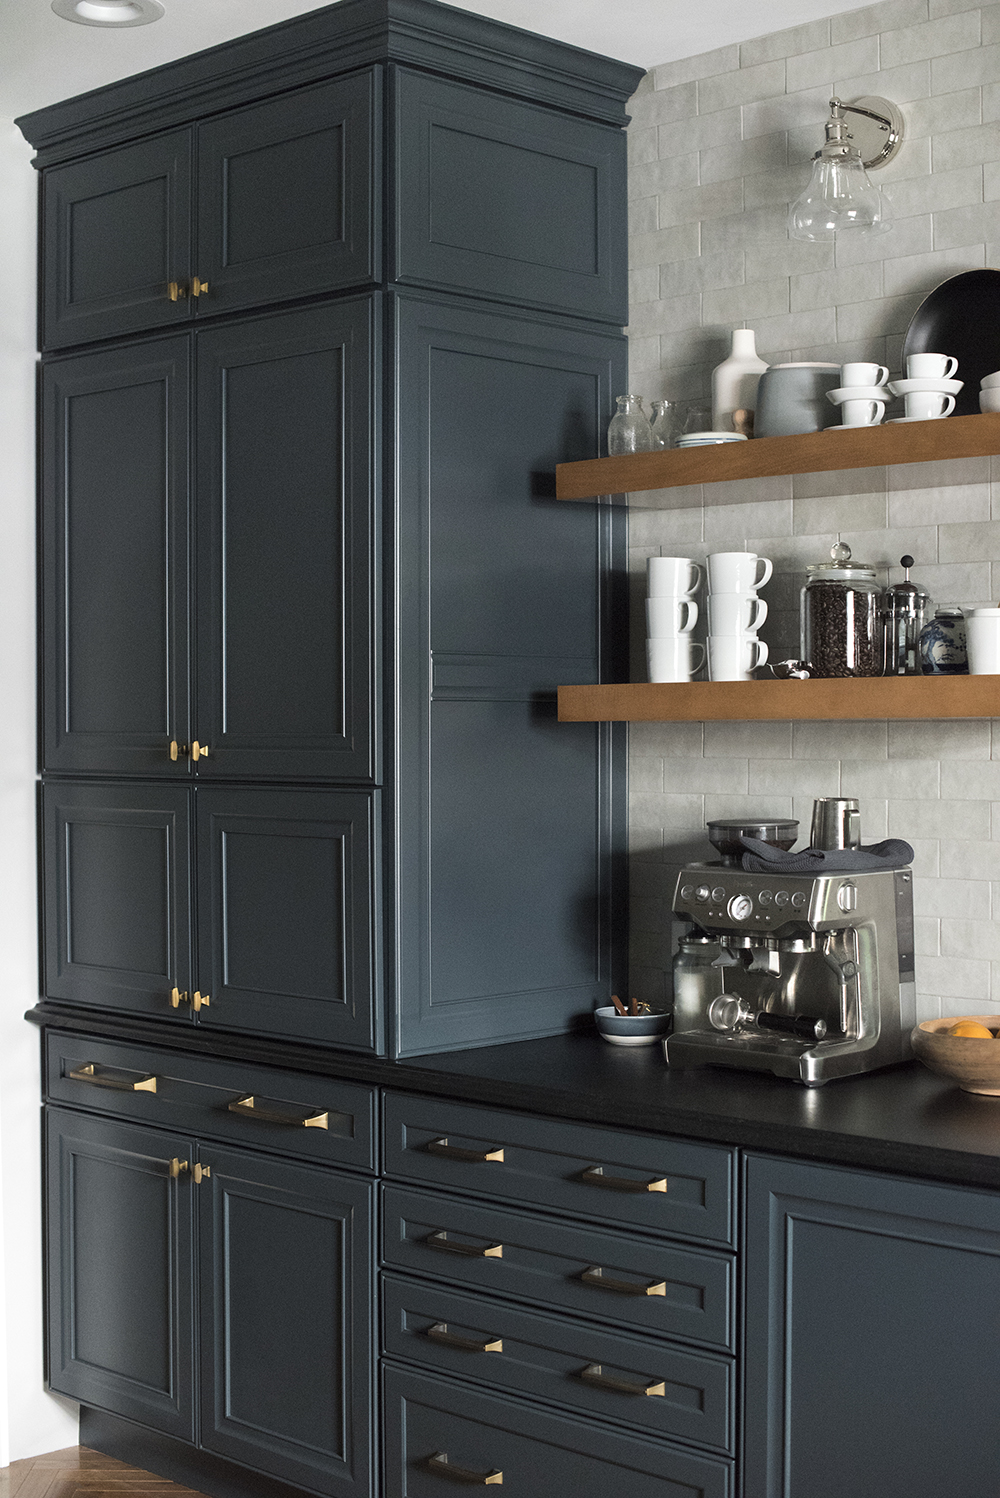 large pantry cabinet and coffee bar in dark kitchen - room